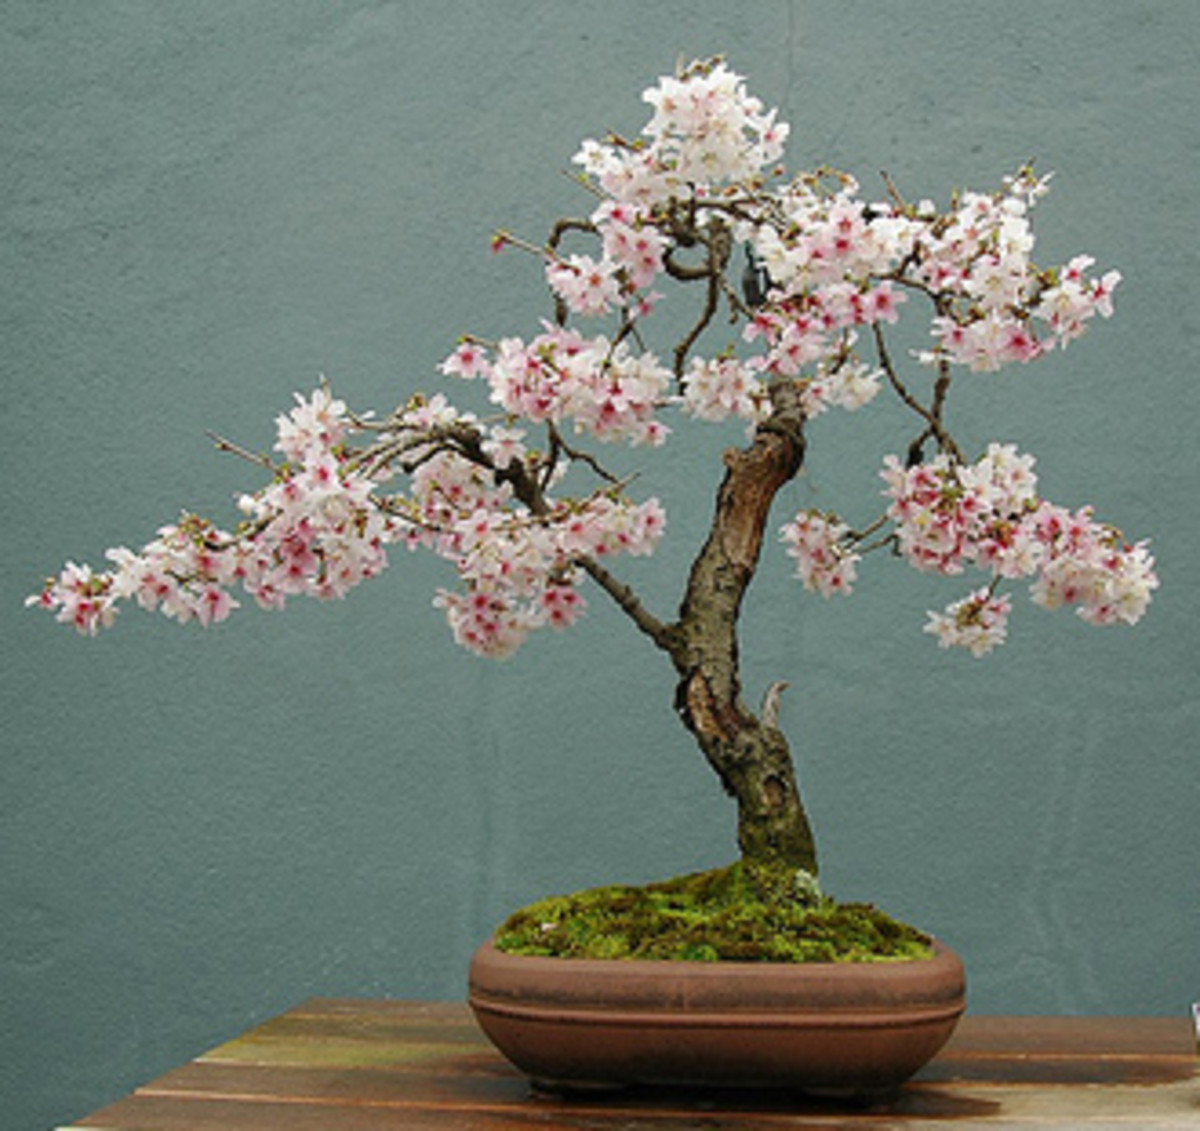 Bonsai Classification: Different Types of Bonsai Trees